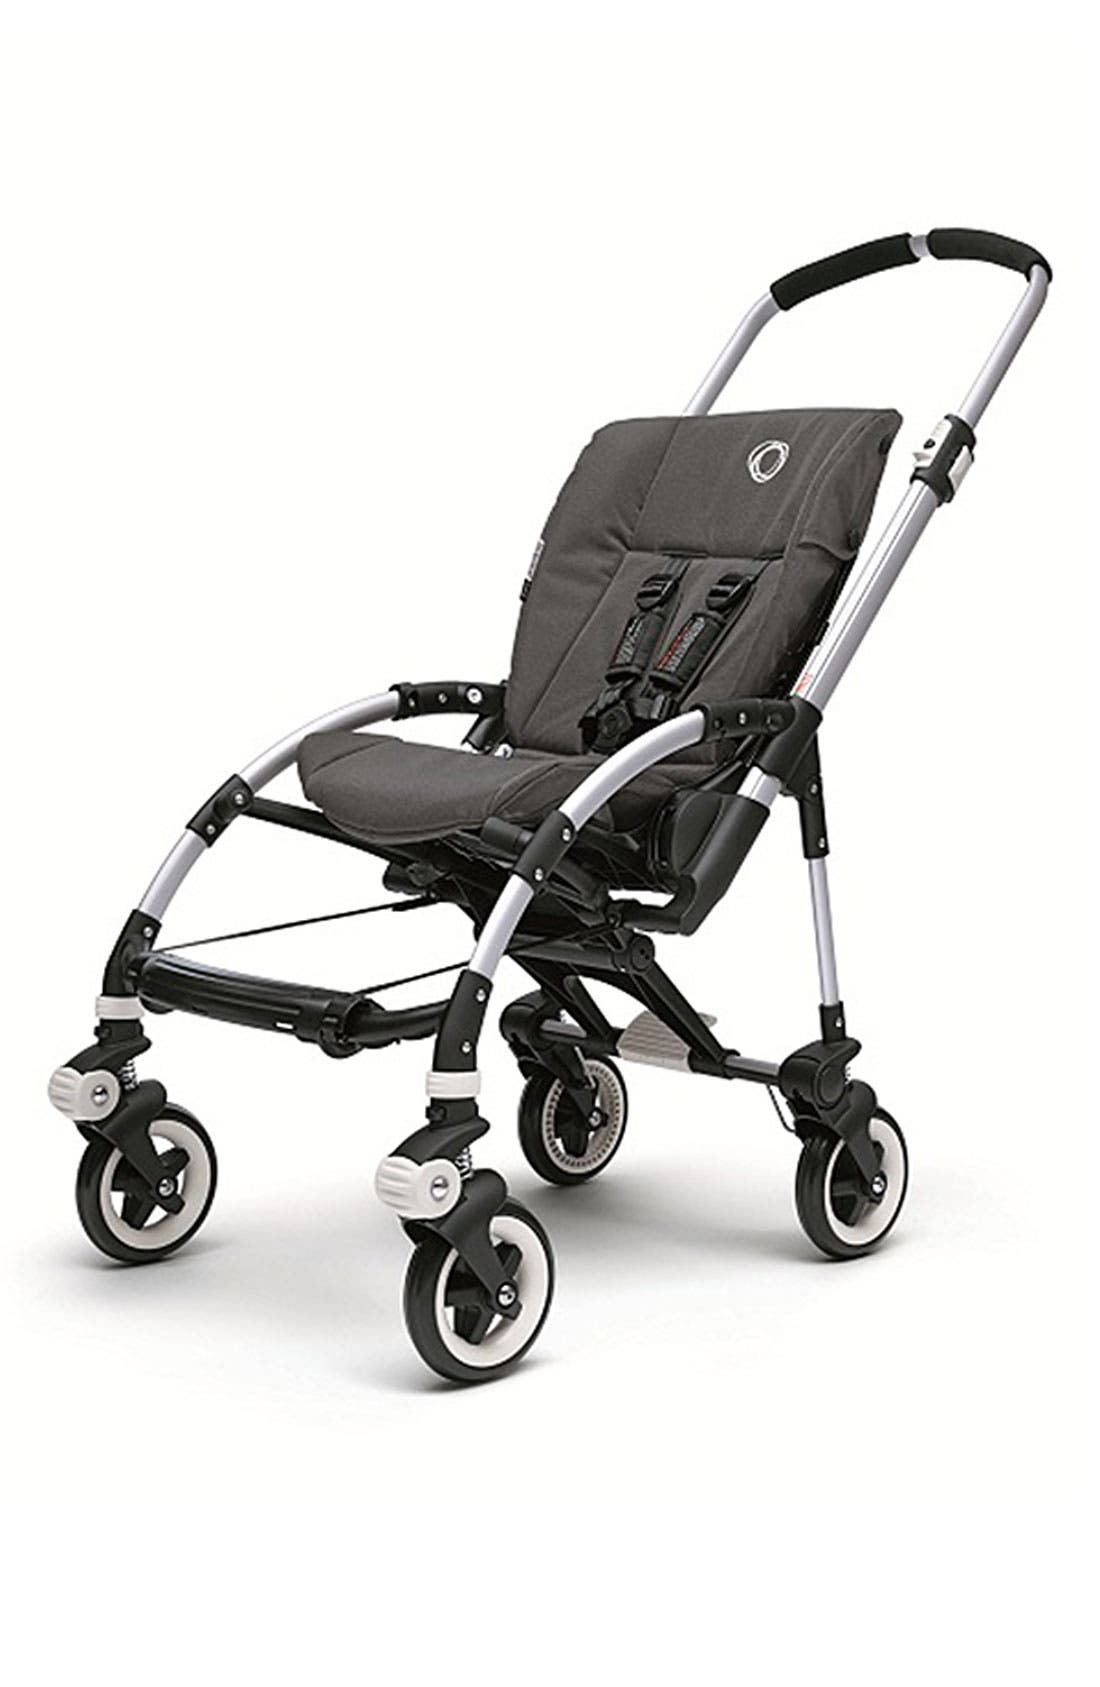 Alternate Image 1 Selected - Bugaboo 'Bee' Stroller Base